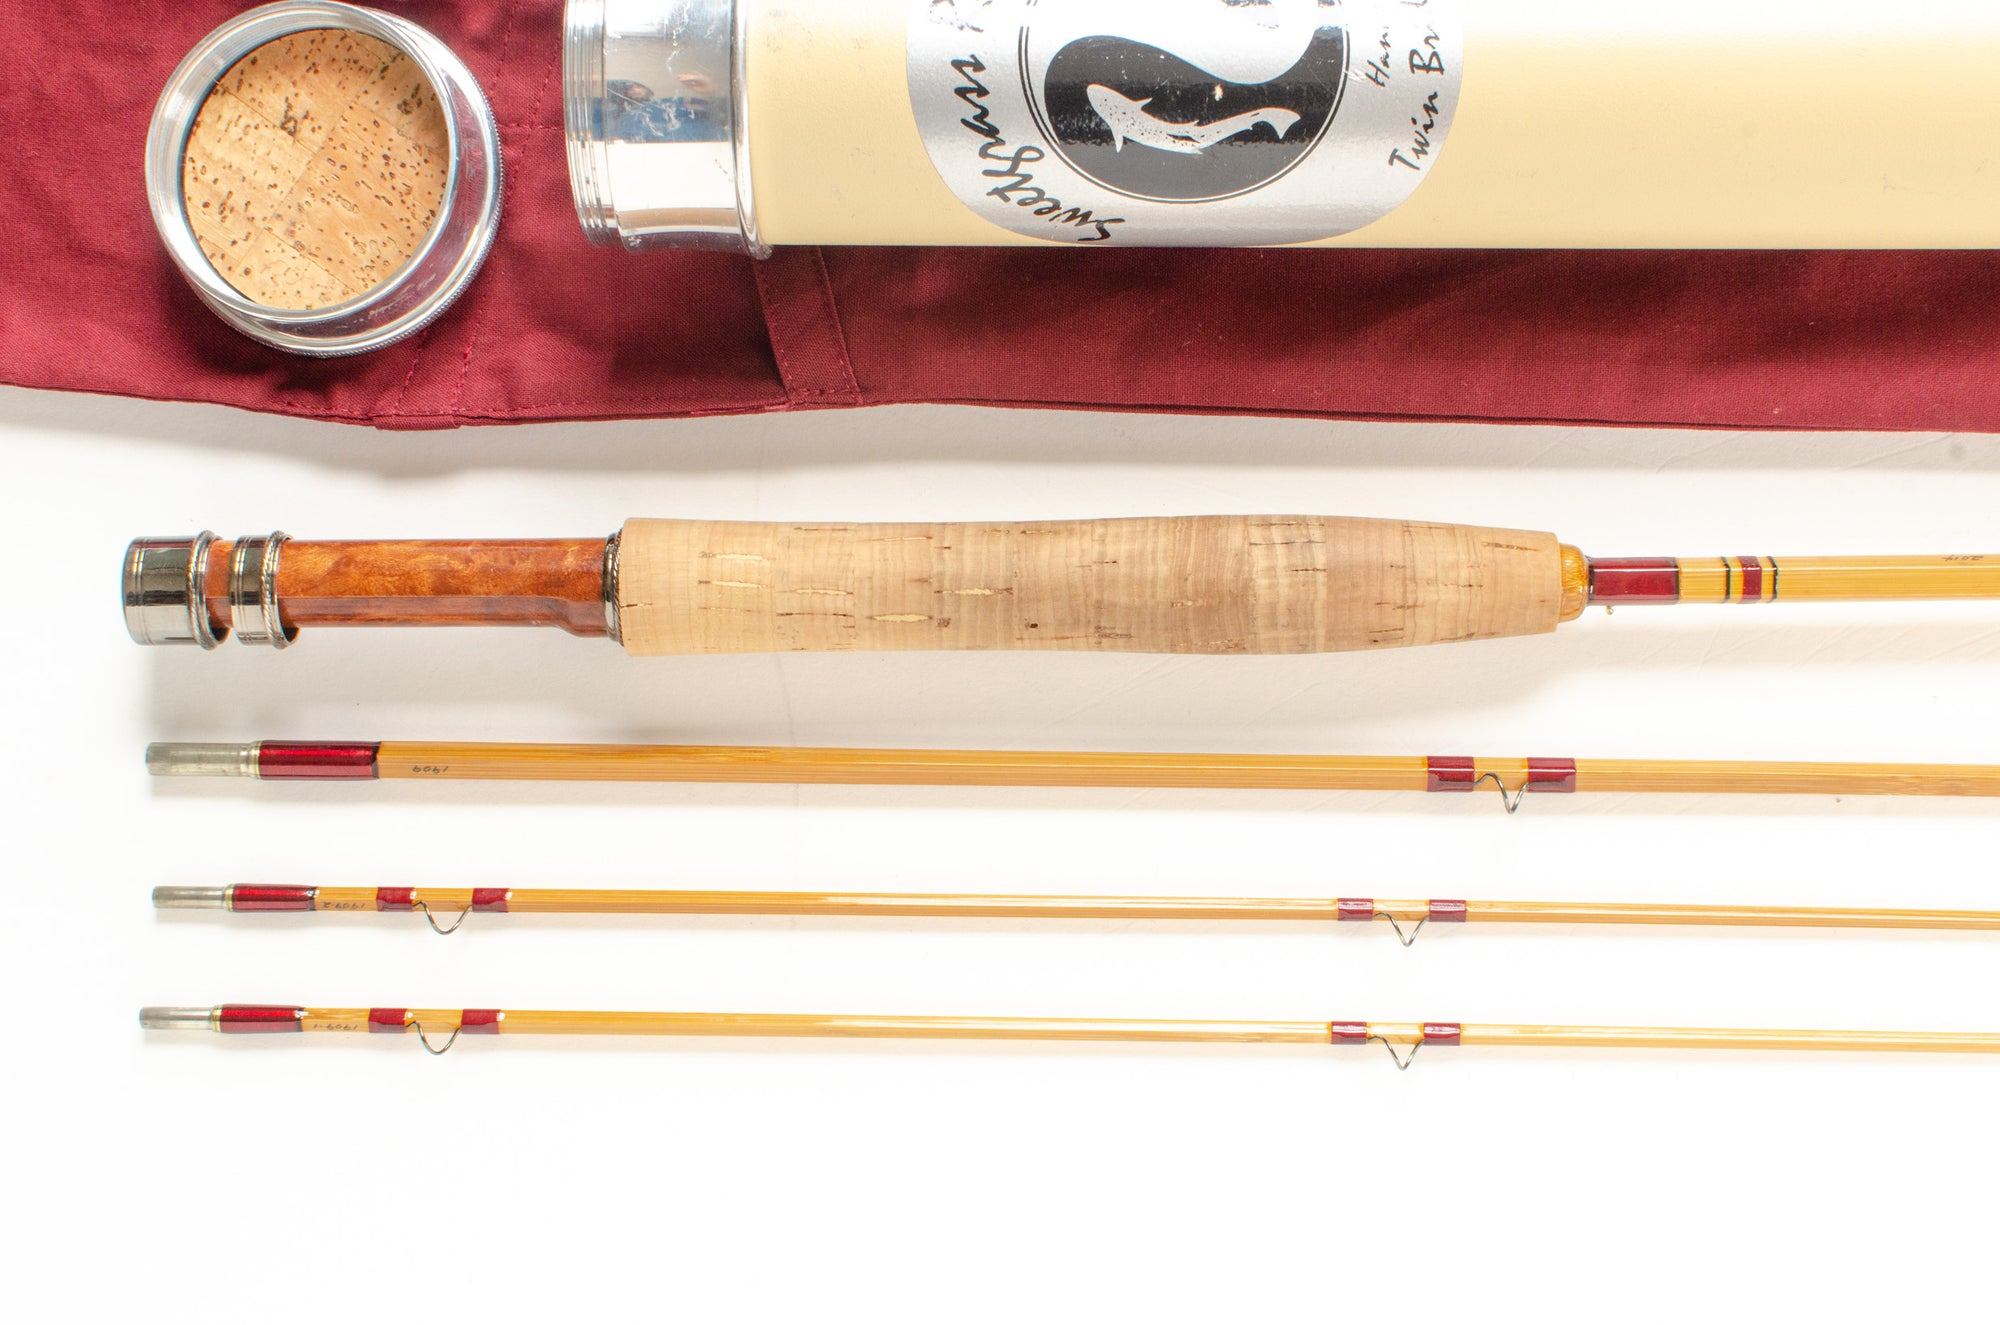 "Sweetgrass Penta Fly Rod 7'6"" 3/2 #4 [SALE PENDING]"